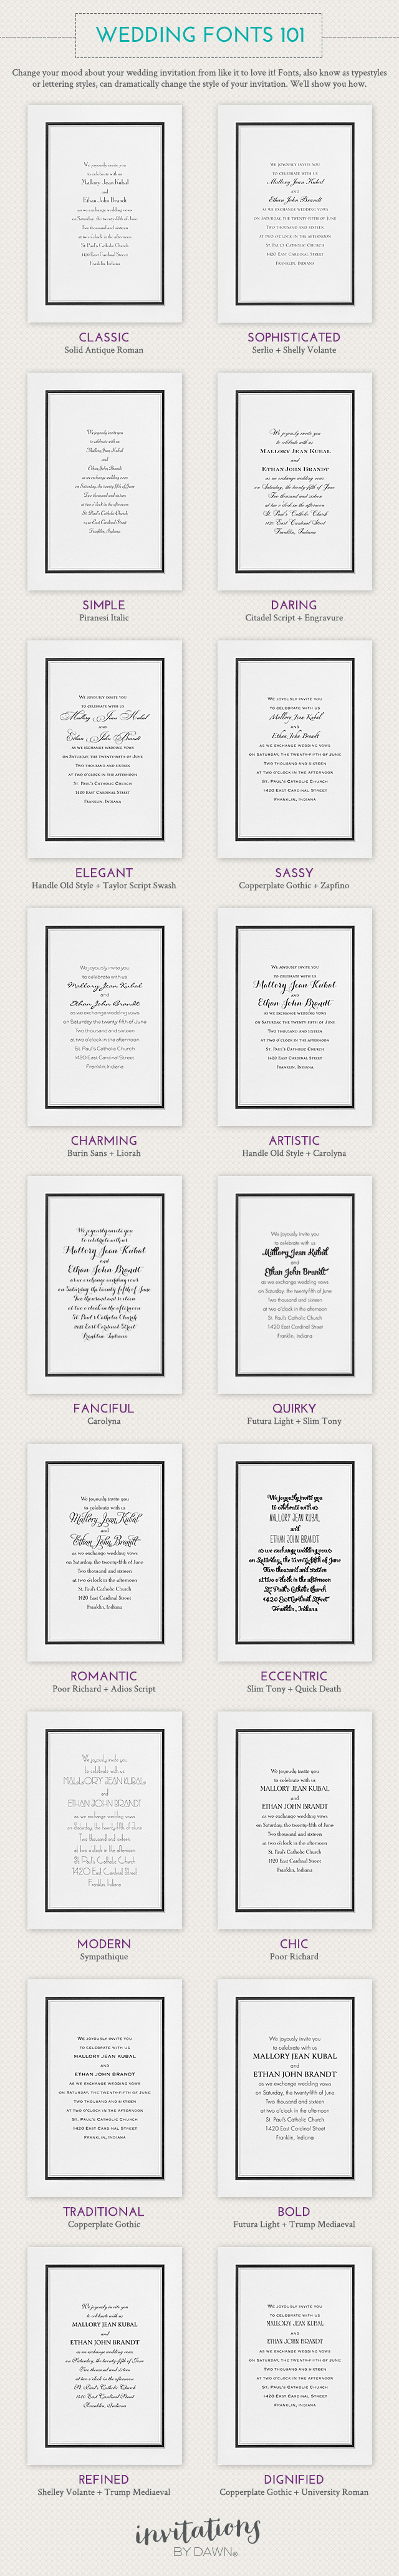 Wedding Fonts 101